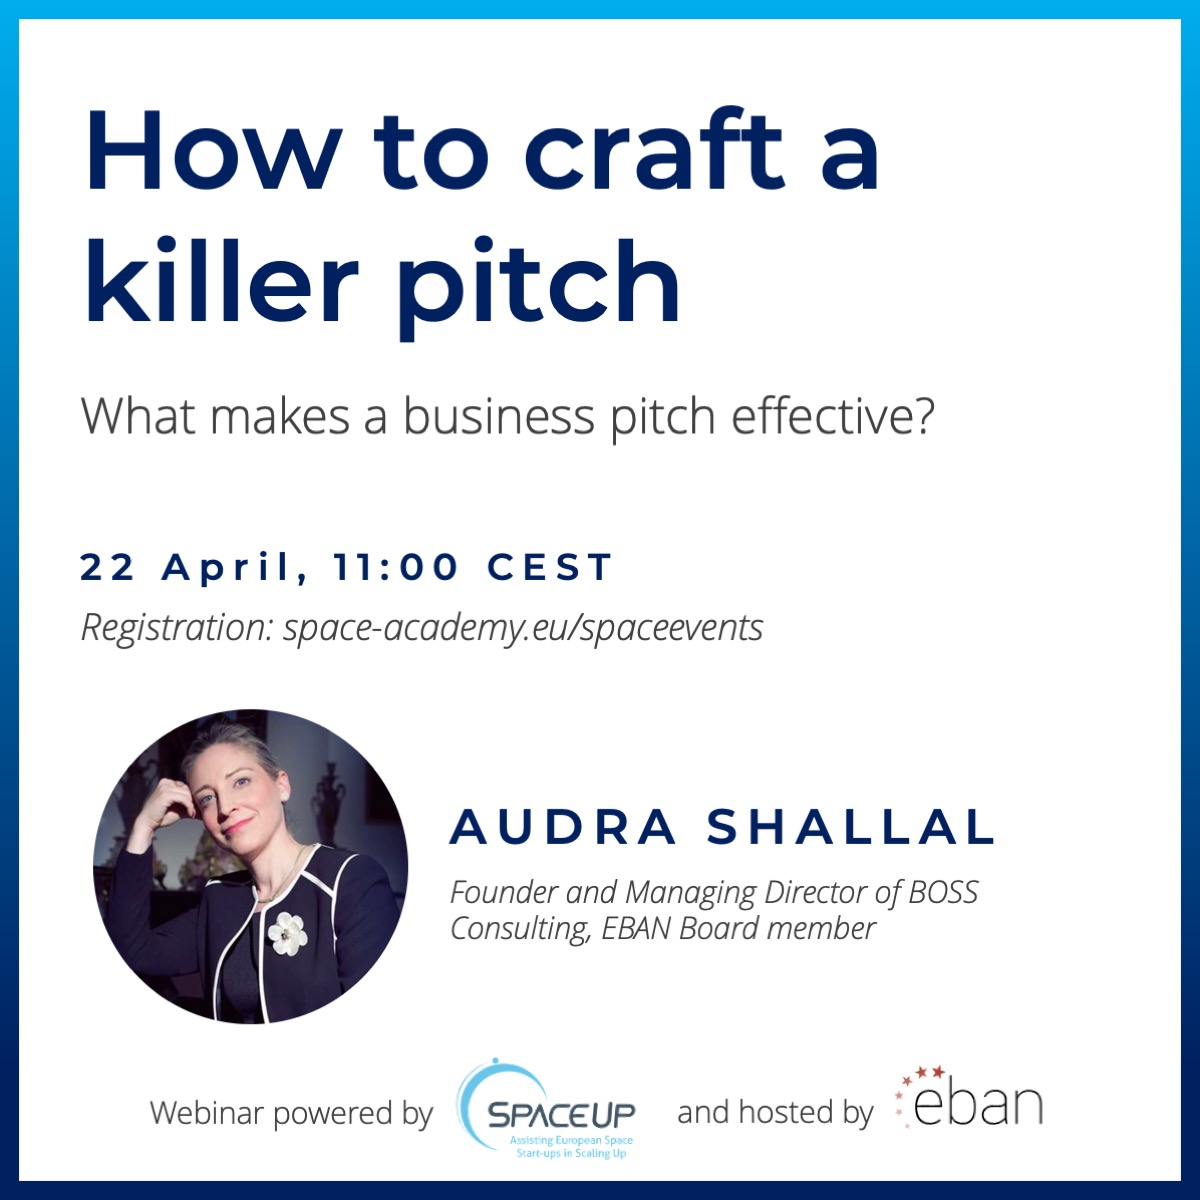 SpaceUp WEBINAR - How to craft a killer pitch